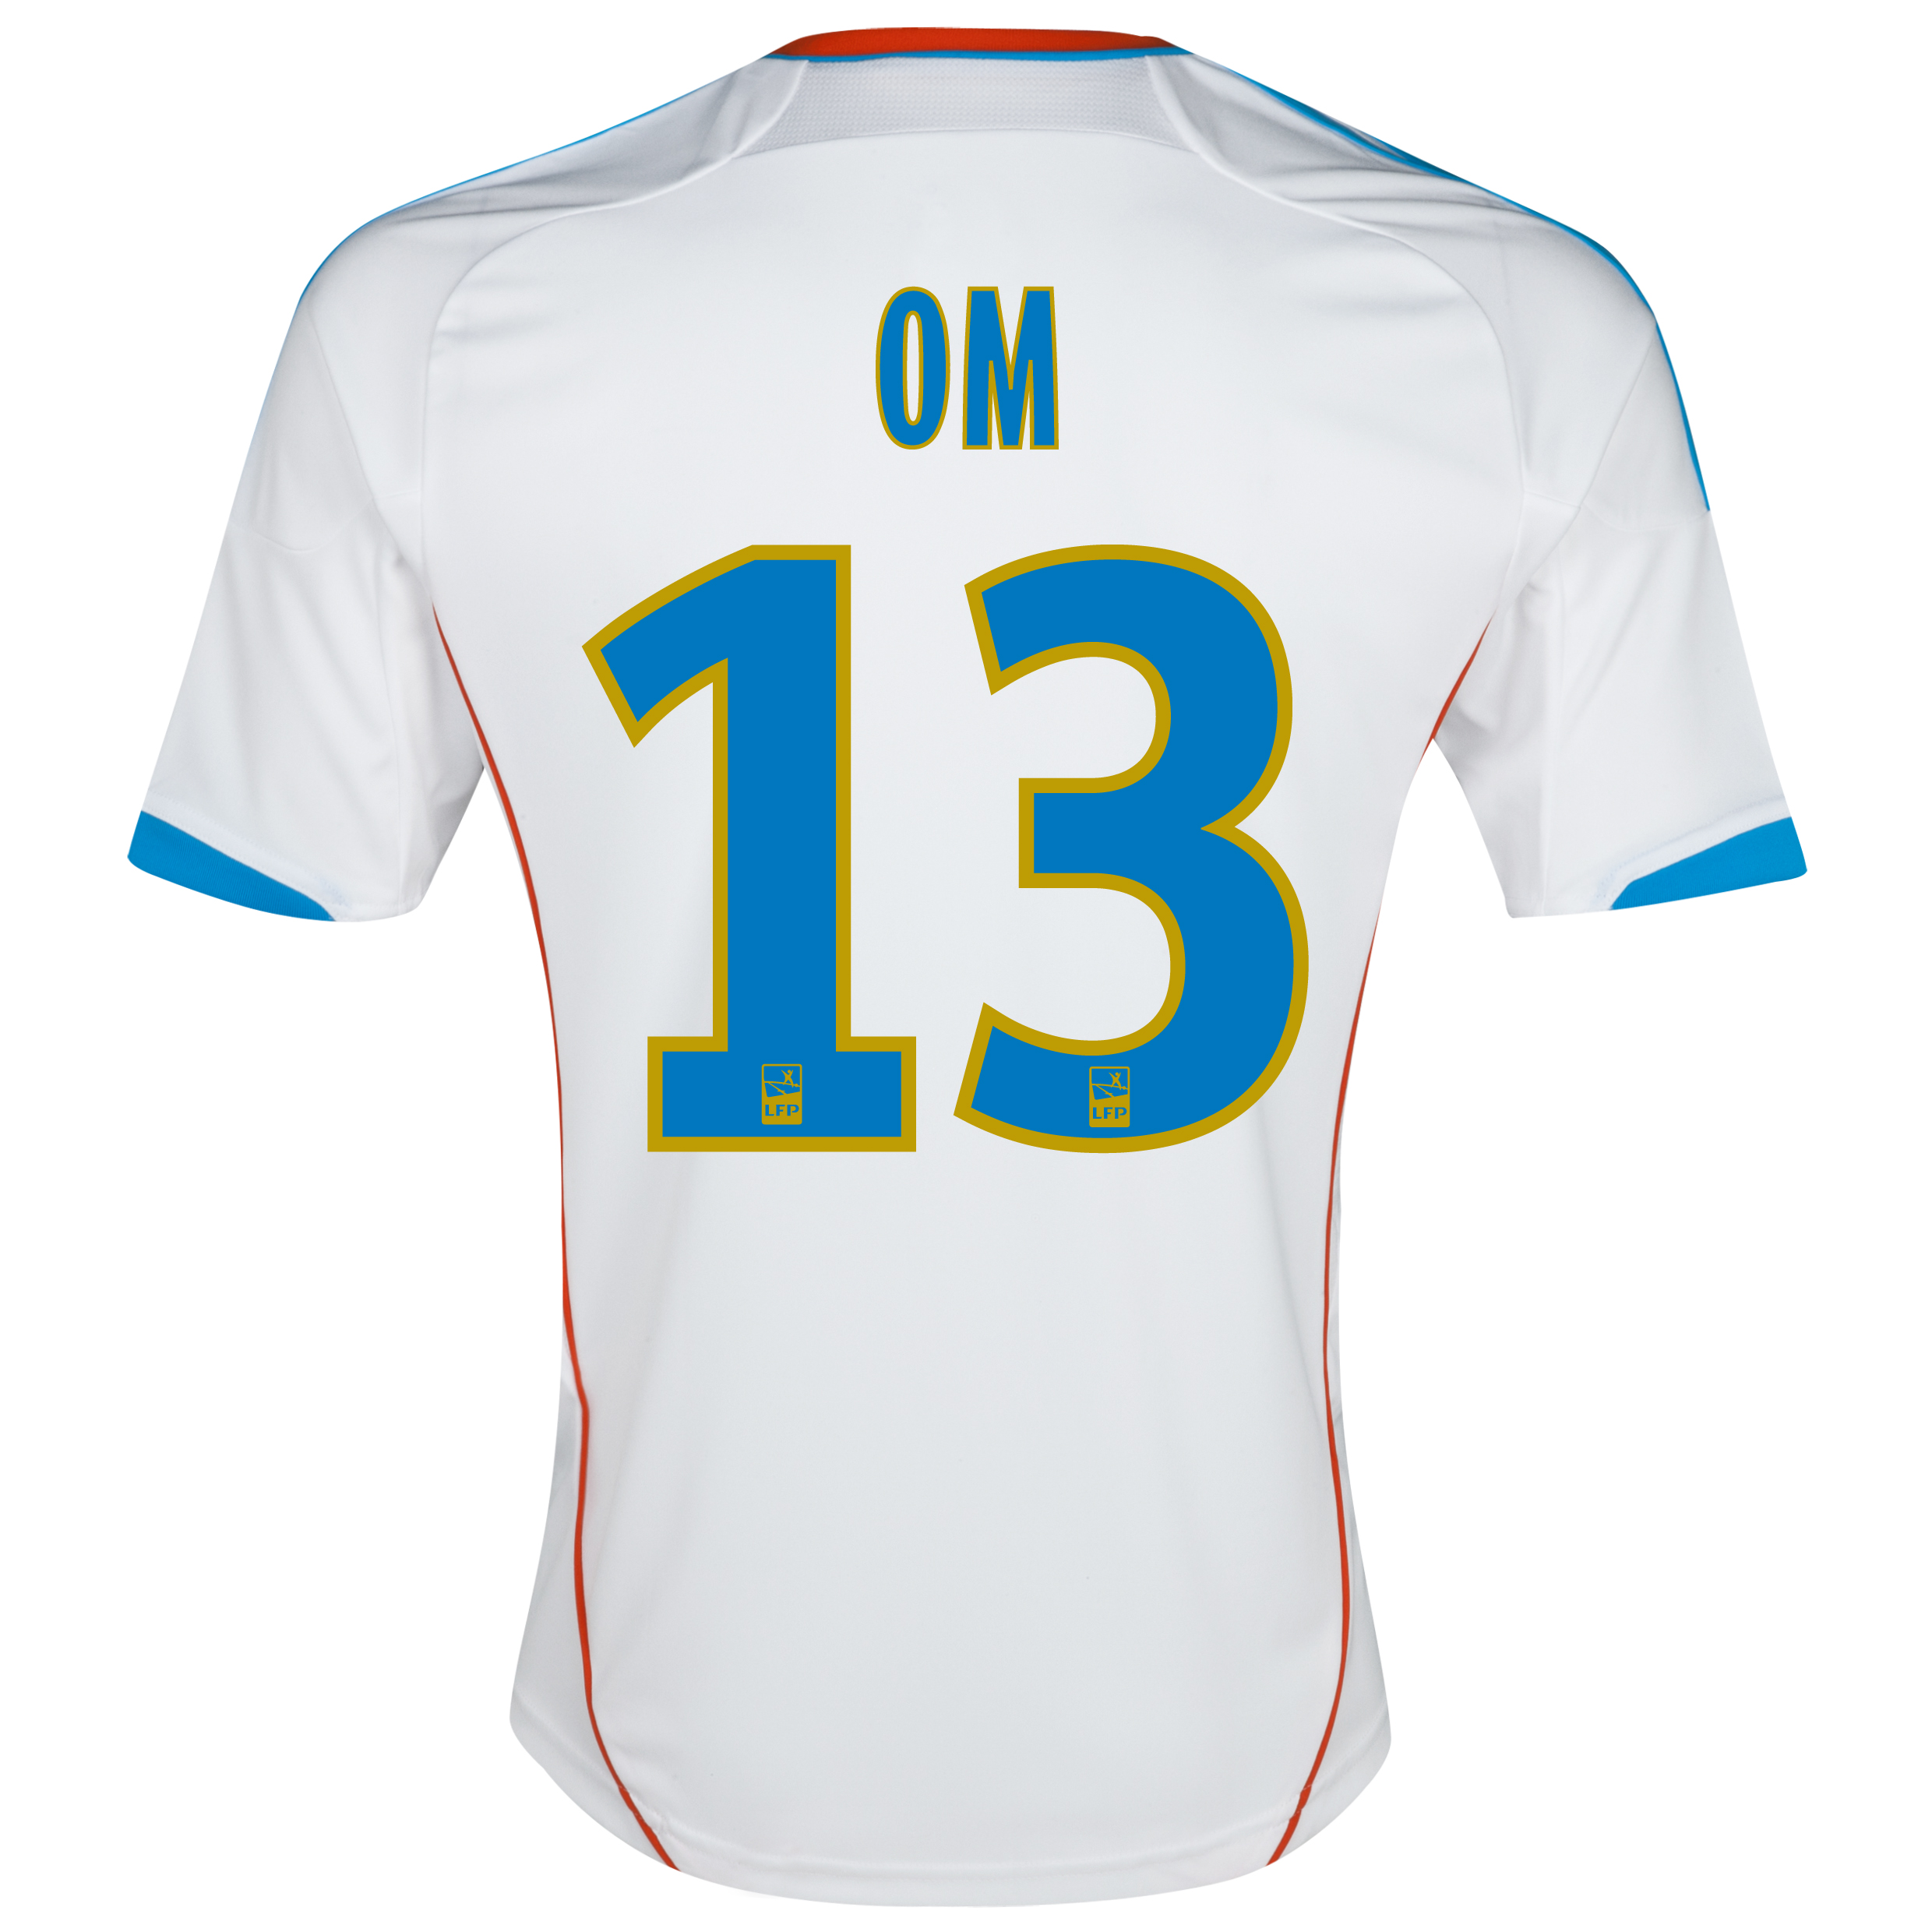 Olympique de Marseille Replica Home Shirt 2012/13 - Junior with OM 13 printing